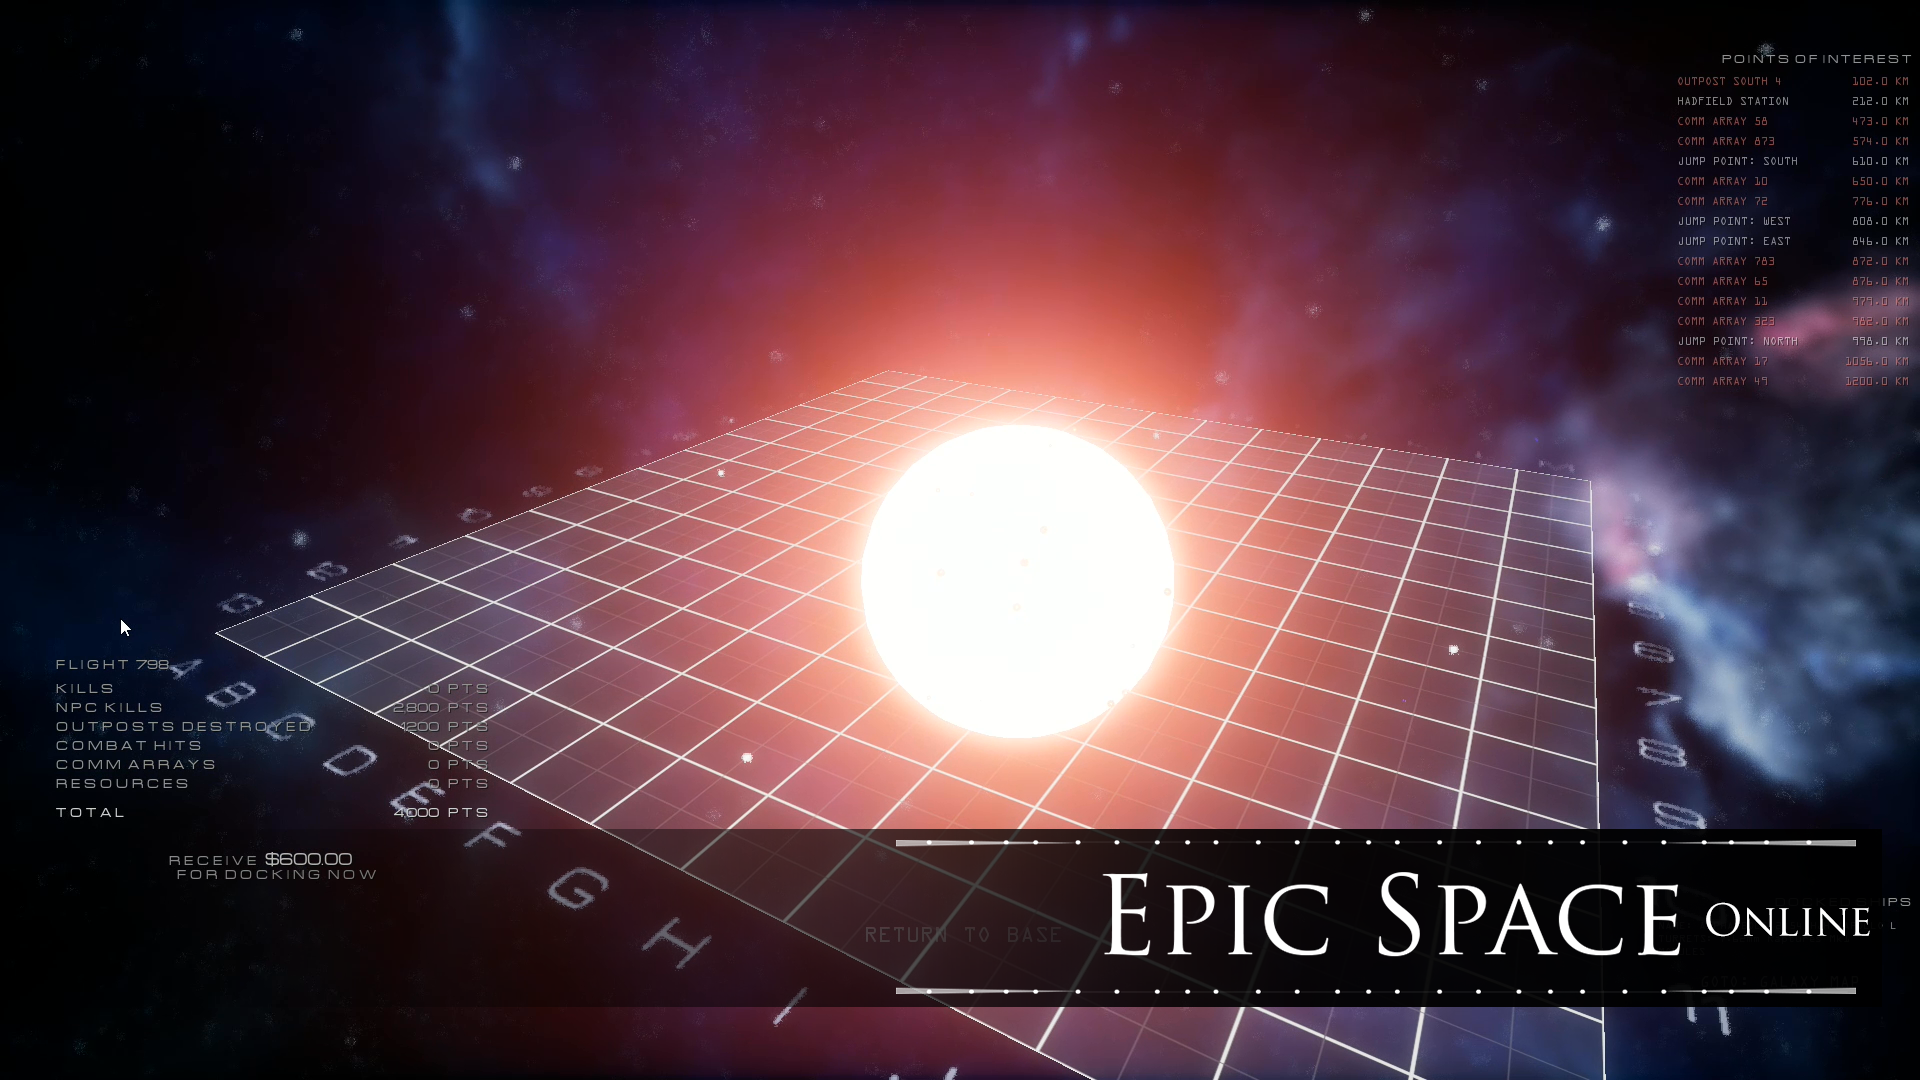 Epic Space: Online